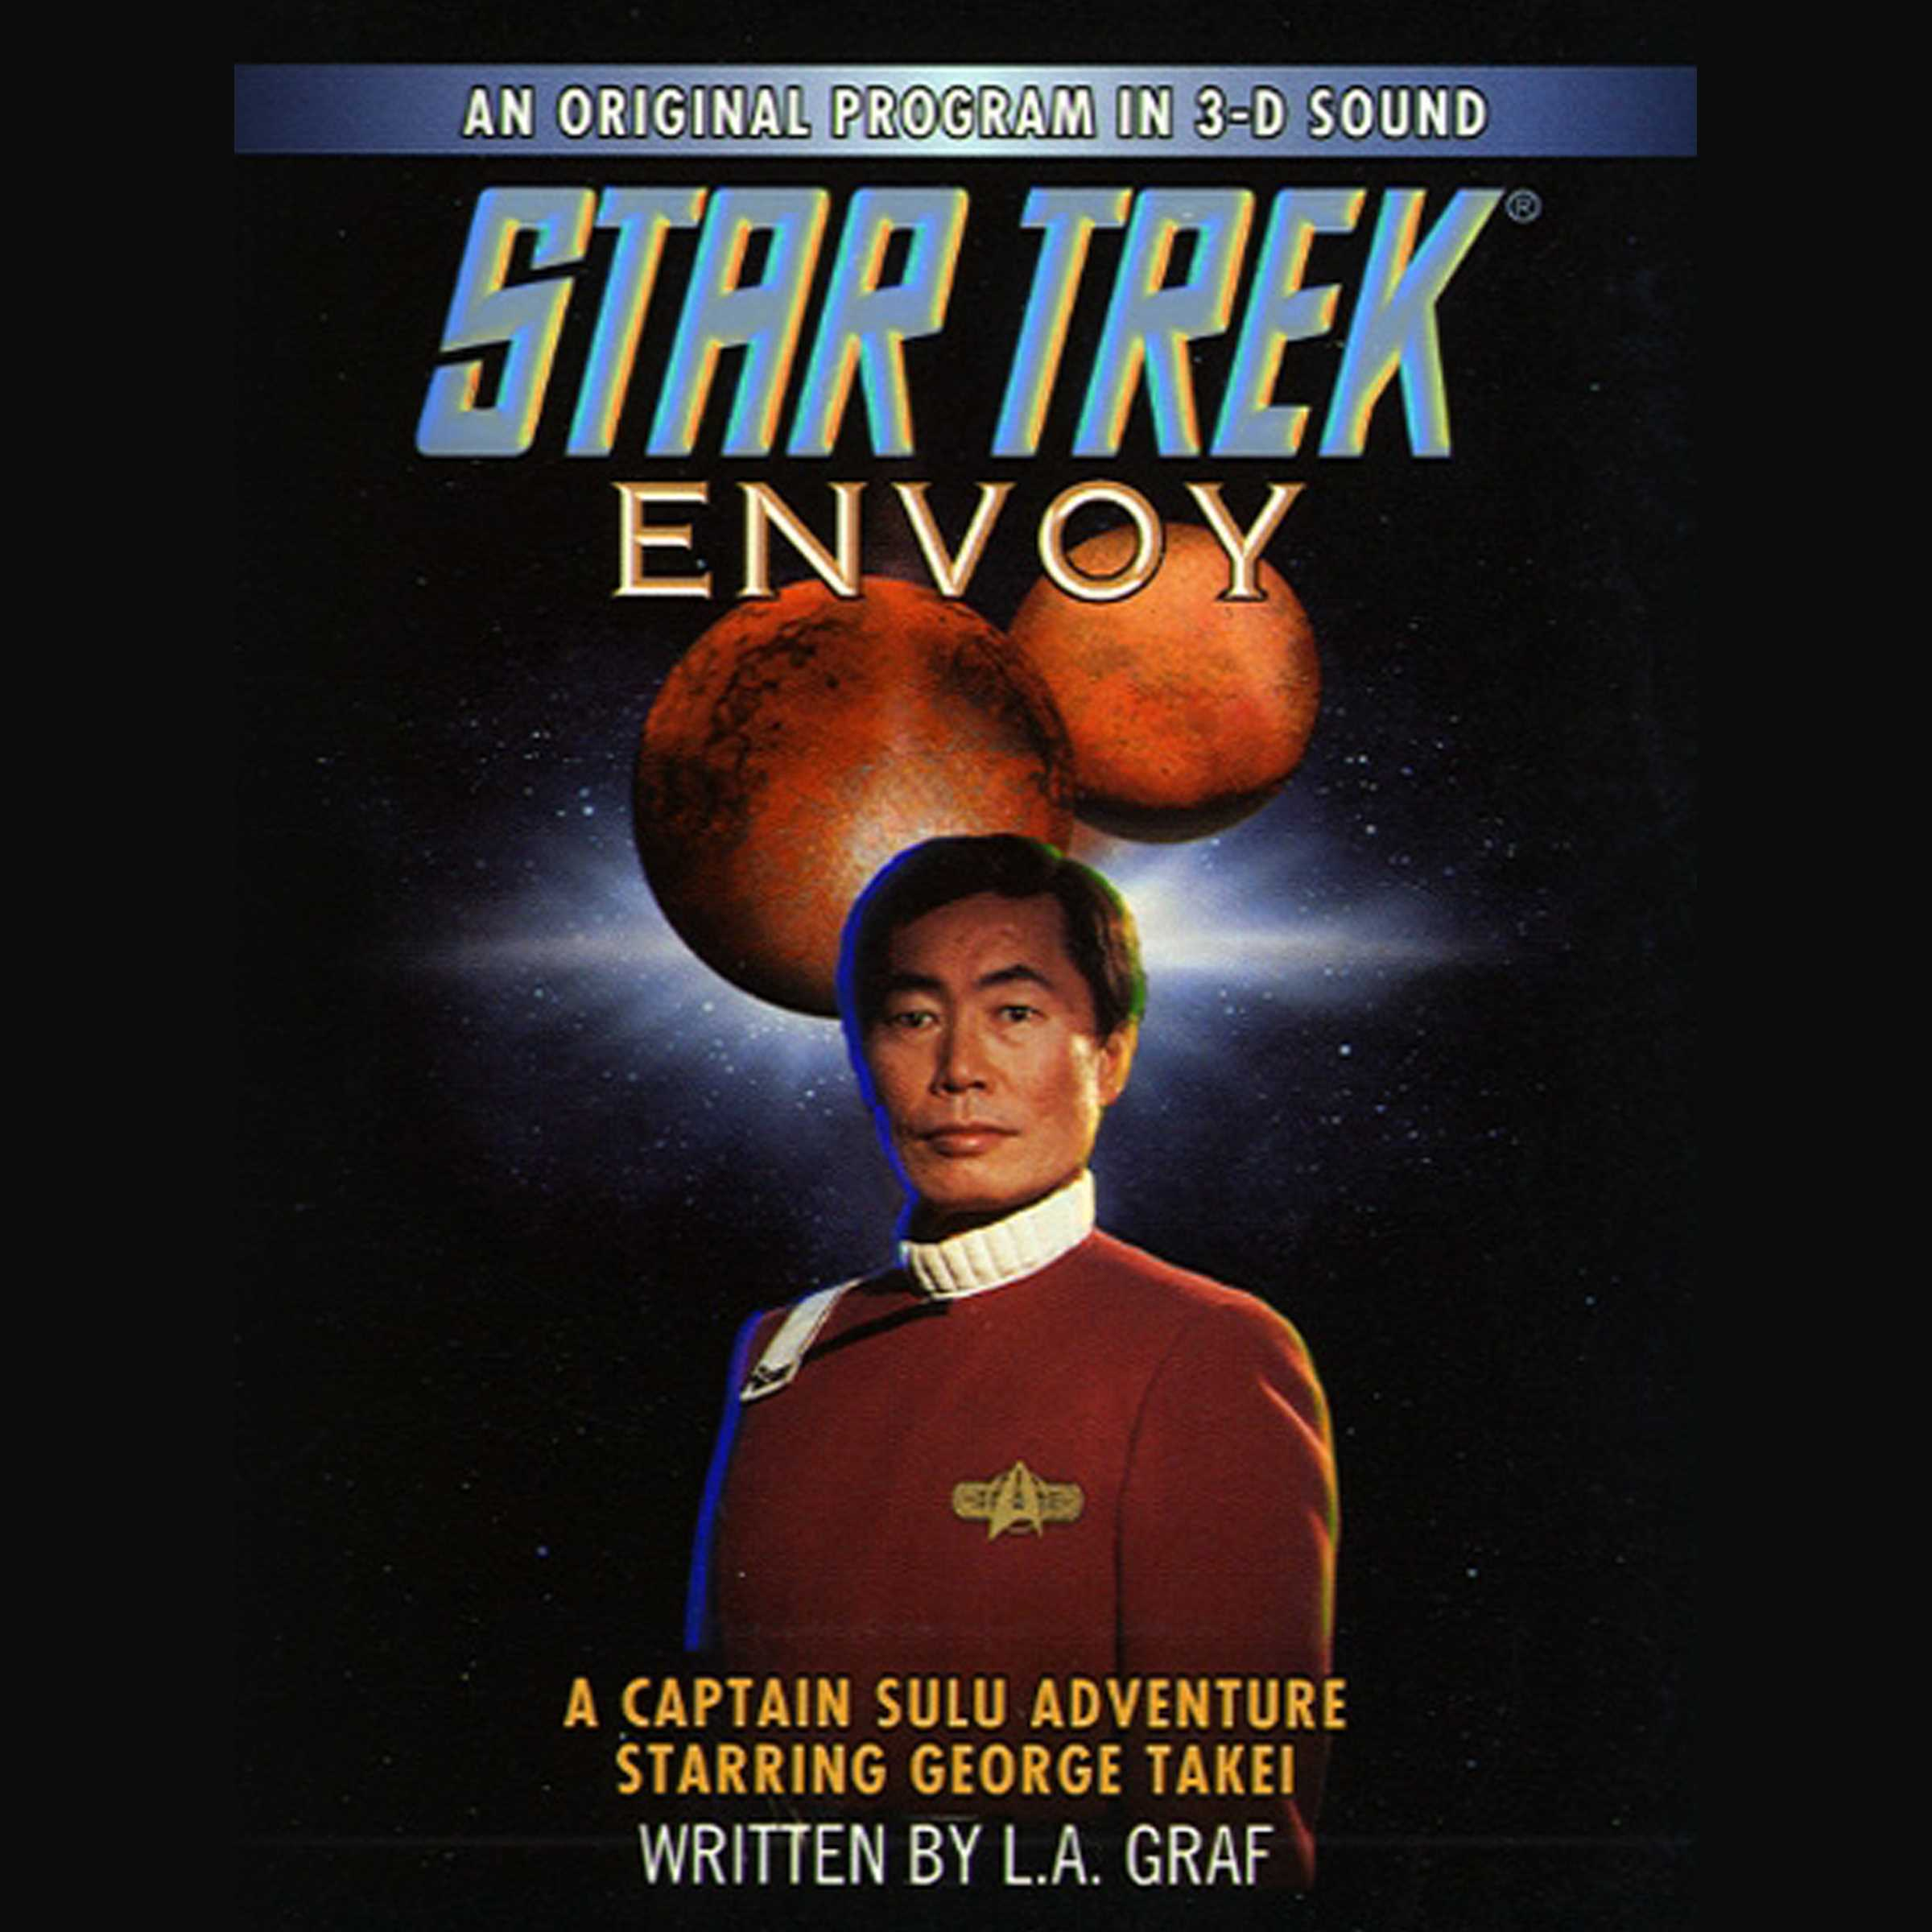 Star trek envoy 9780743542555 hr